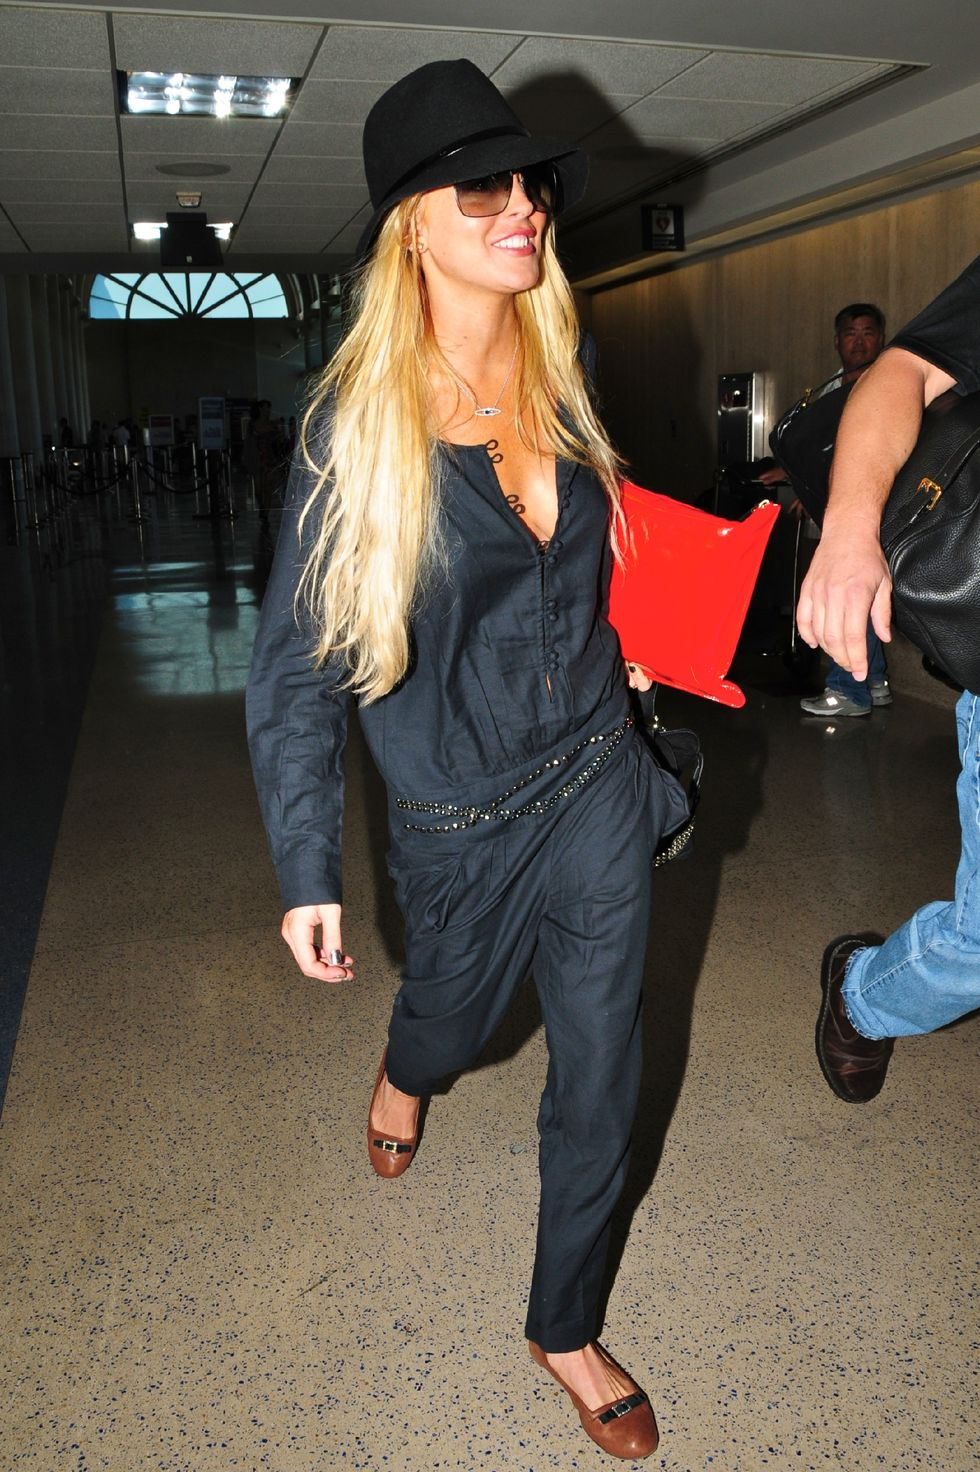 lindsay-lohan-cleavage-candids-at-lax-airport-01